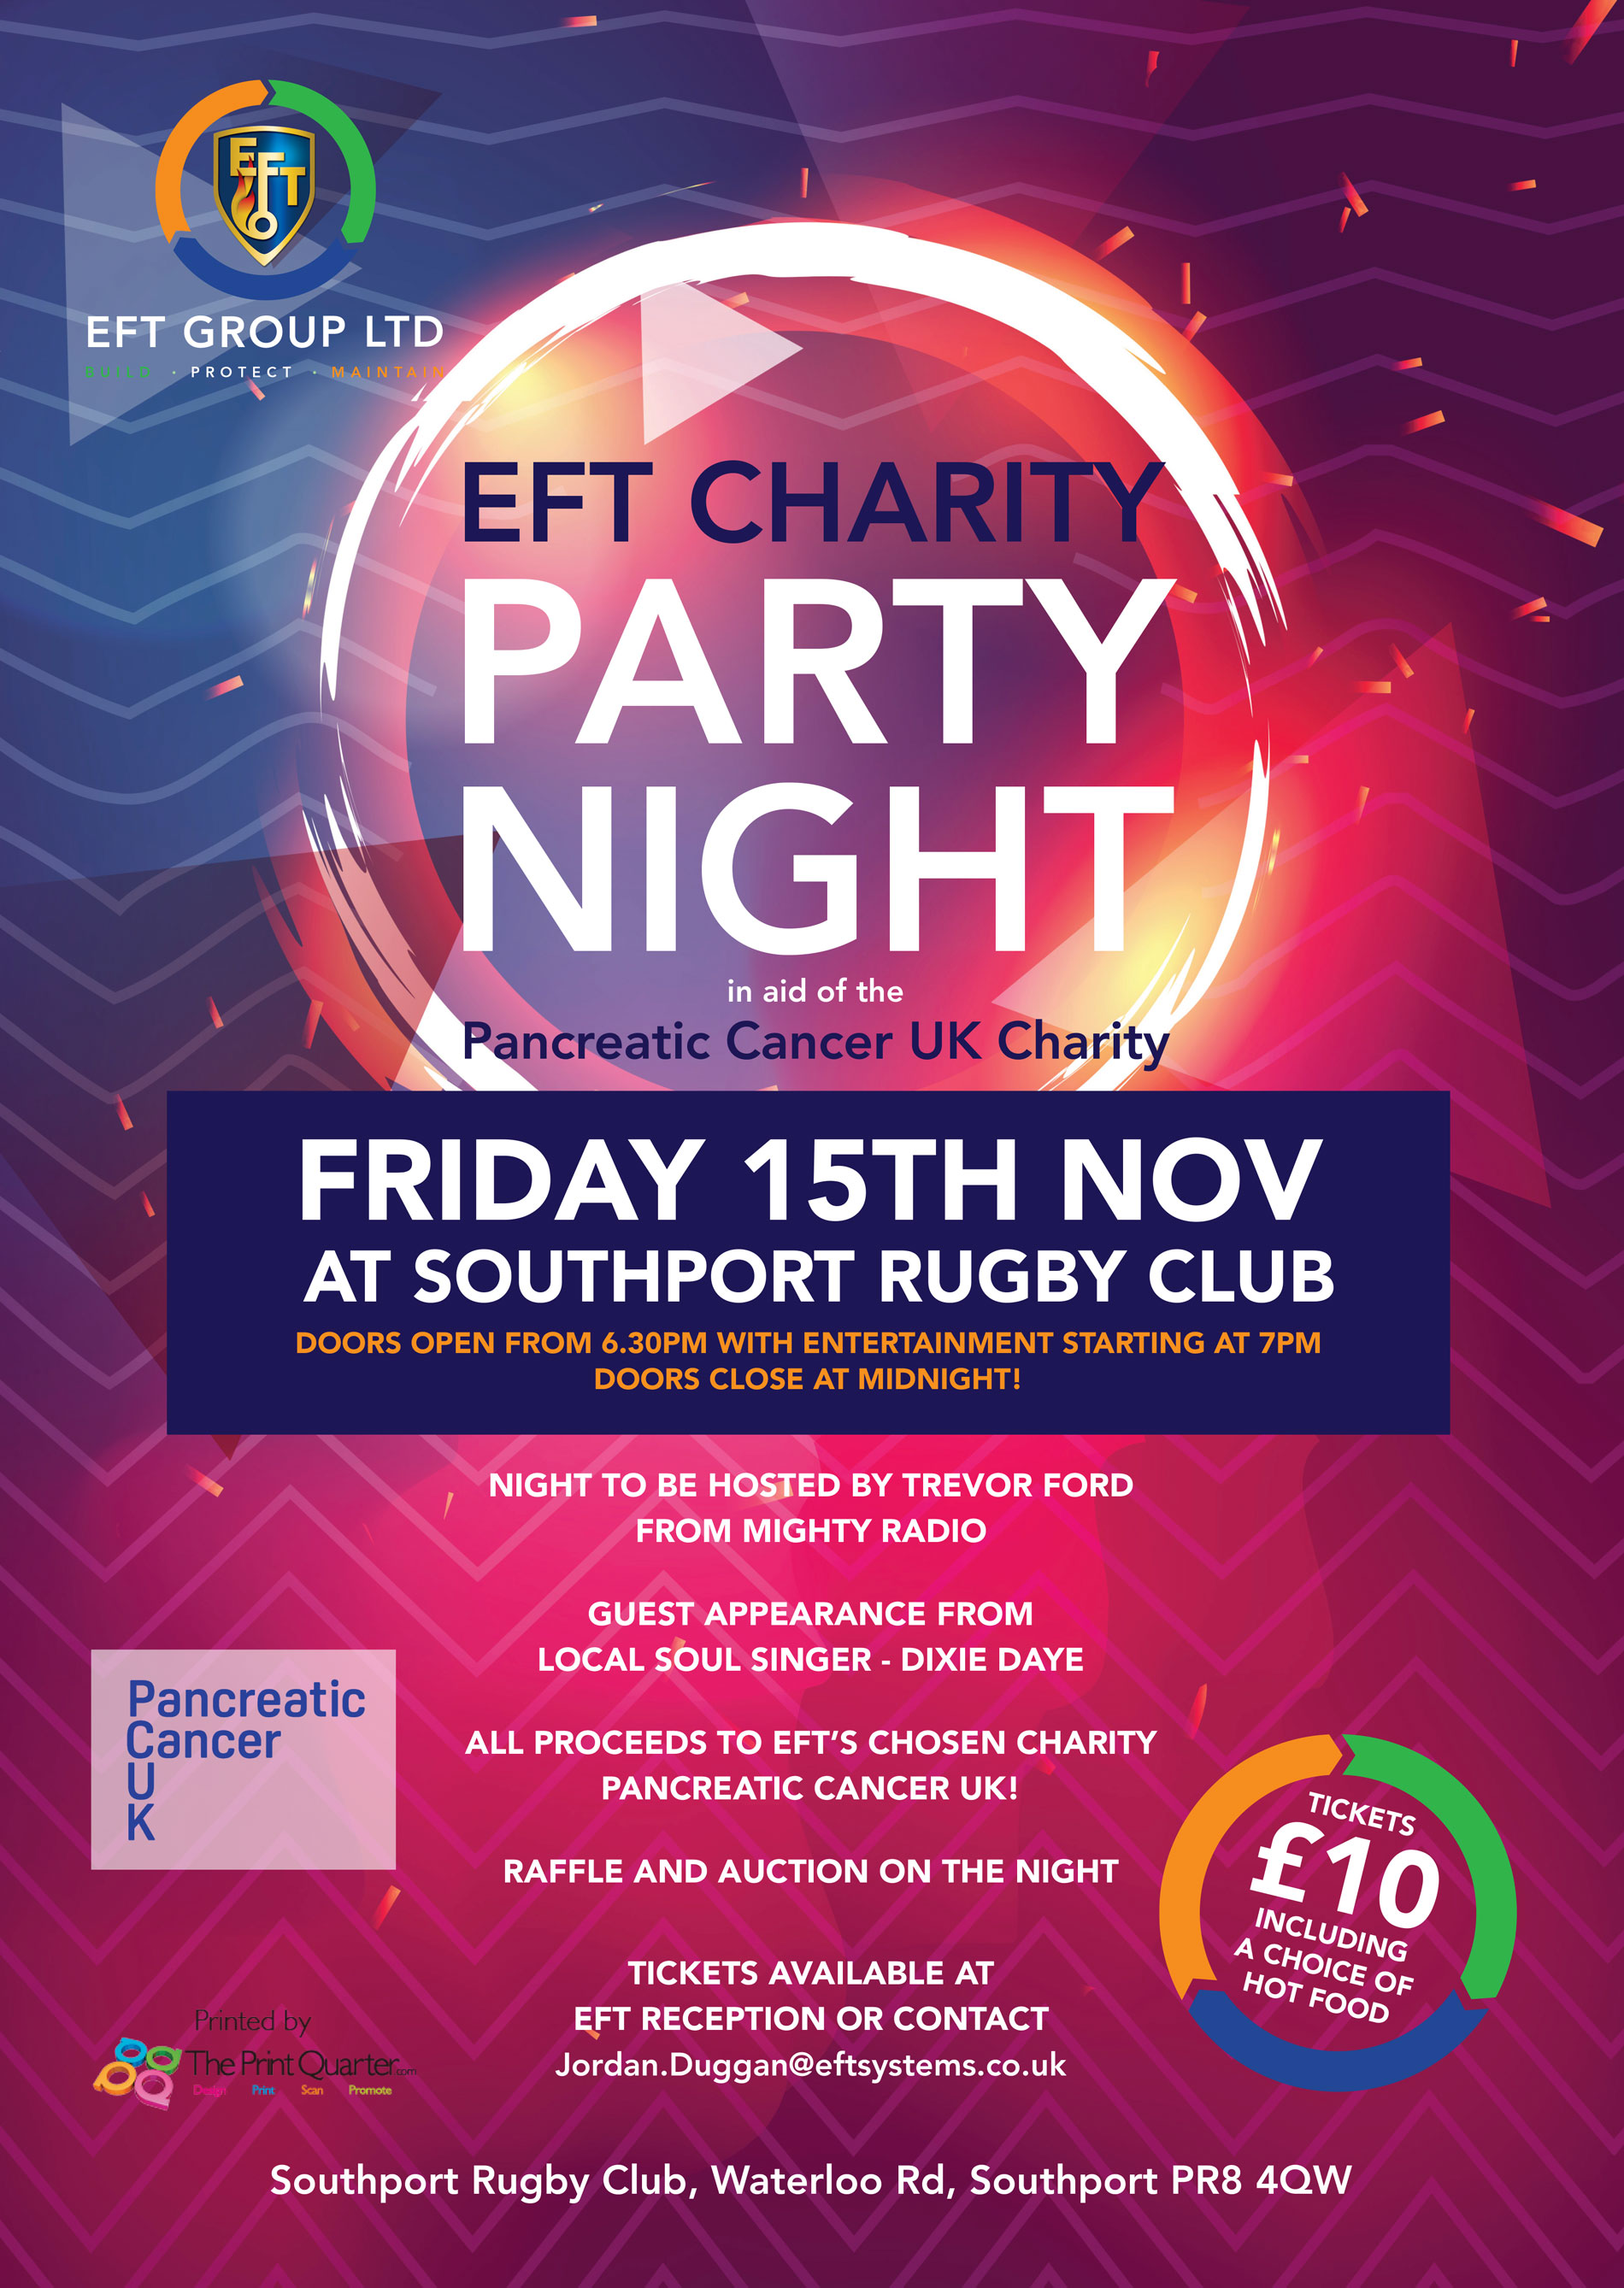 Only 2 Weeks To Go Until EFT Party Night – In Aid Of Pancreatic Cancer UK!